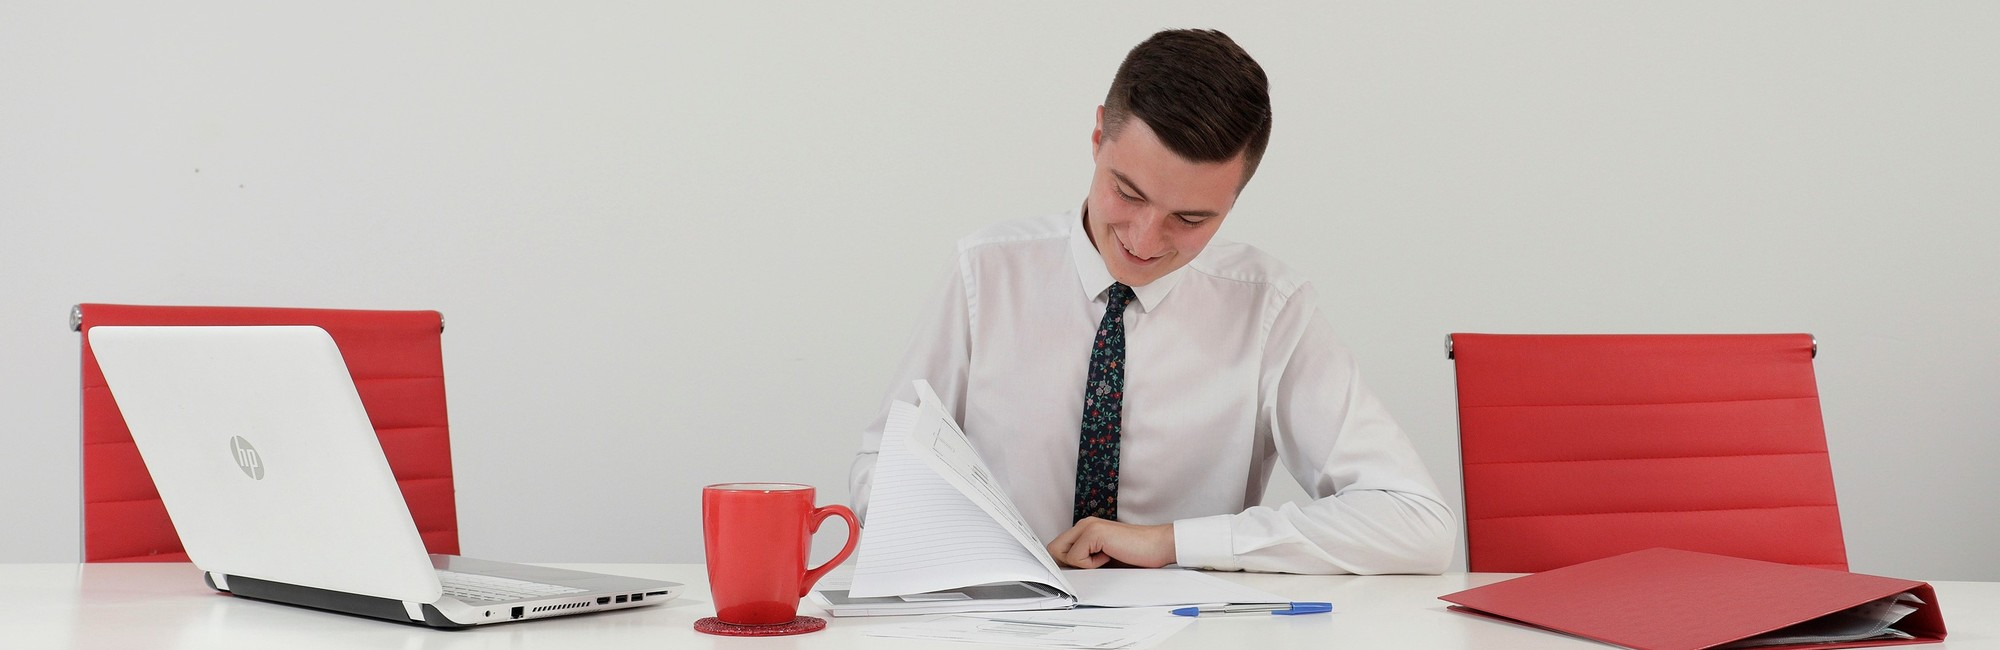 business professional, smiling worker, mug, tea, coffee, chairs, folder, pen, note pad,